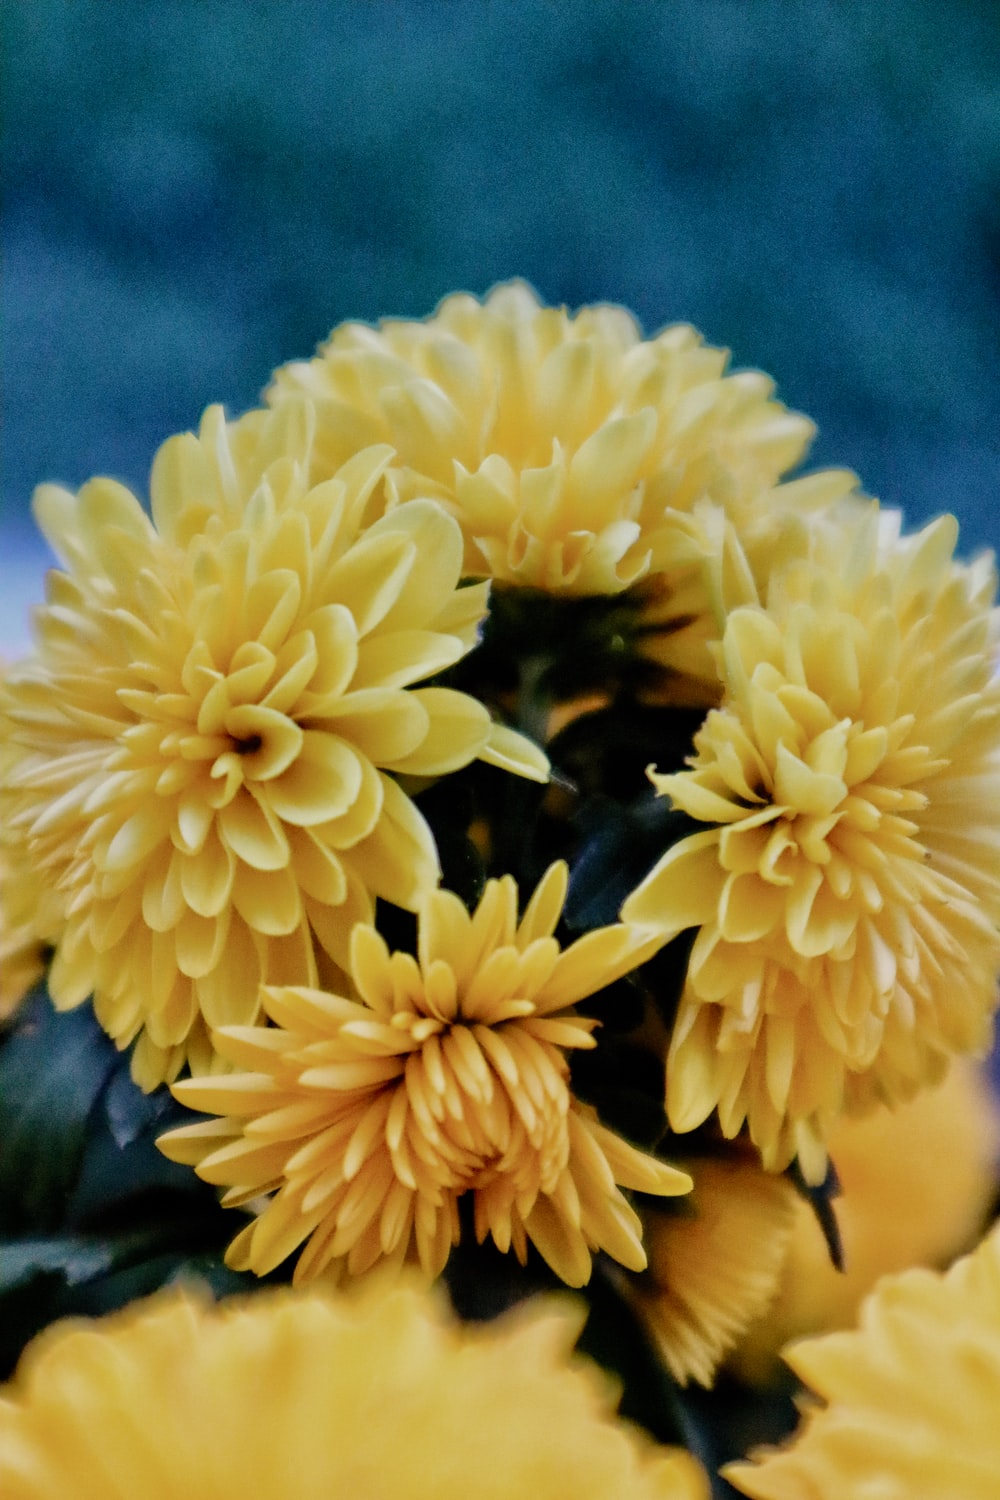 selective focus photo of yellow-petaled flowers bouquet